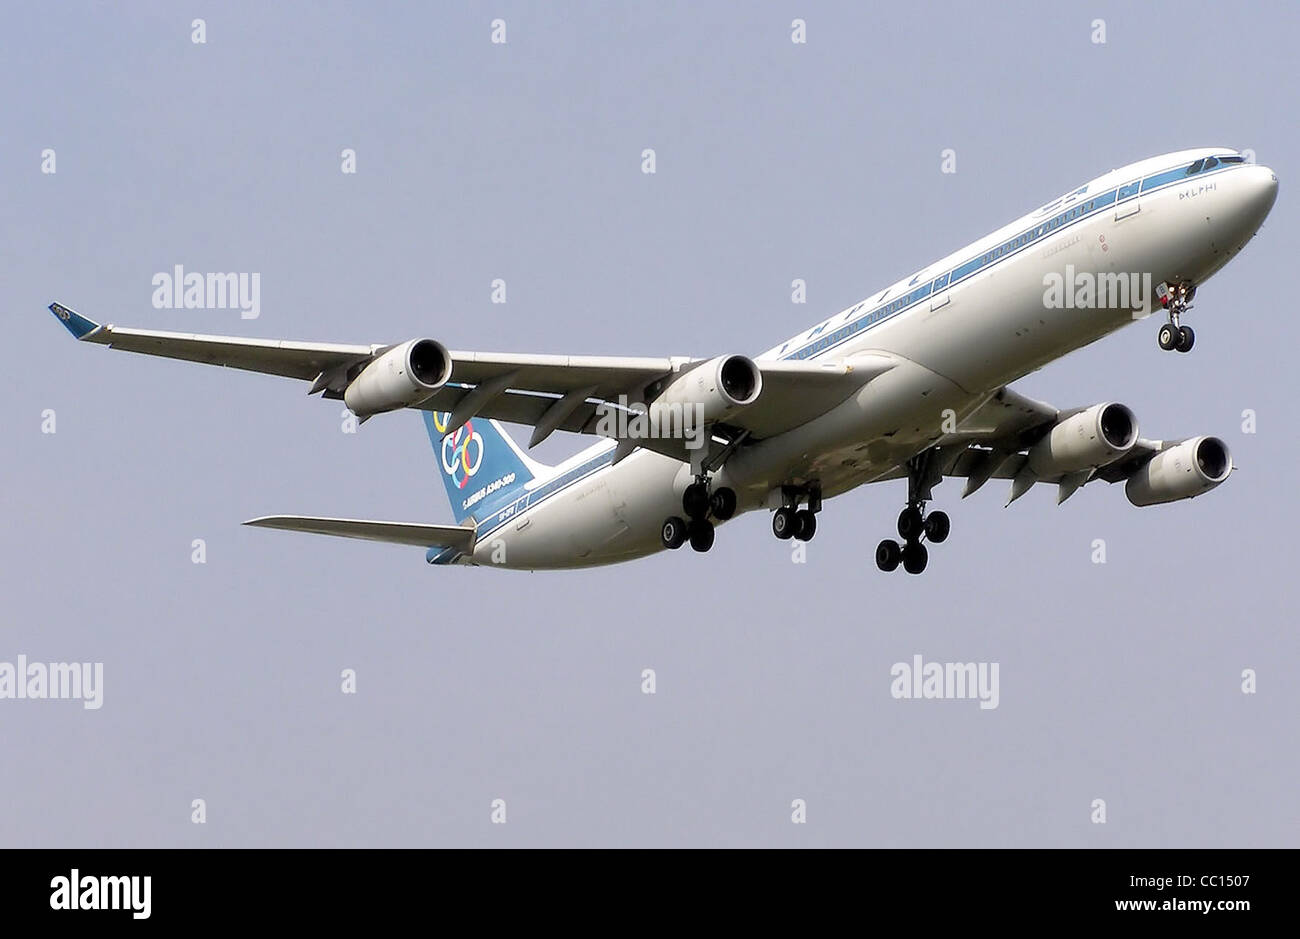 Olympic Airbus A340-300 (SX-DFB) landing at London Heathrow Airport, England. - Stock Image